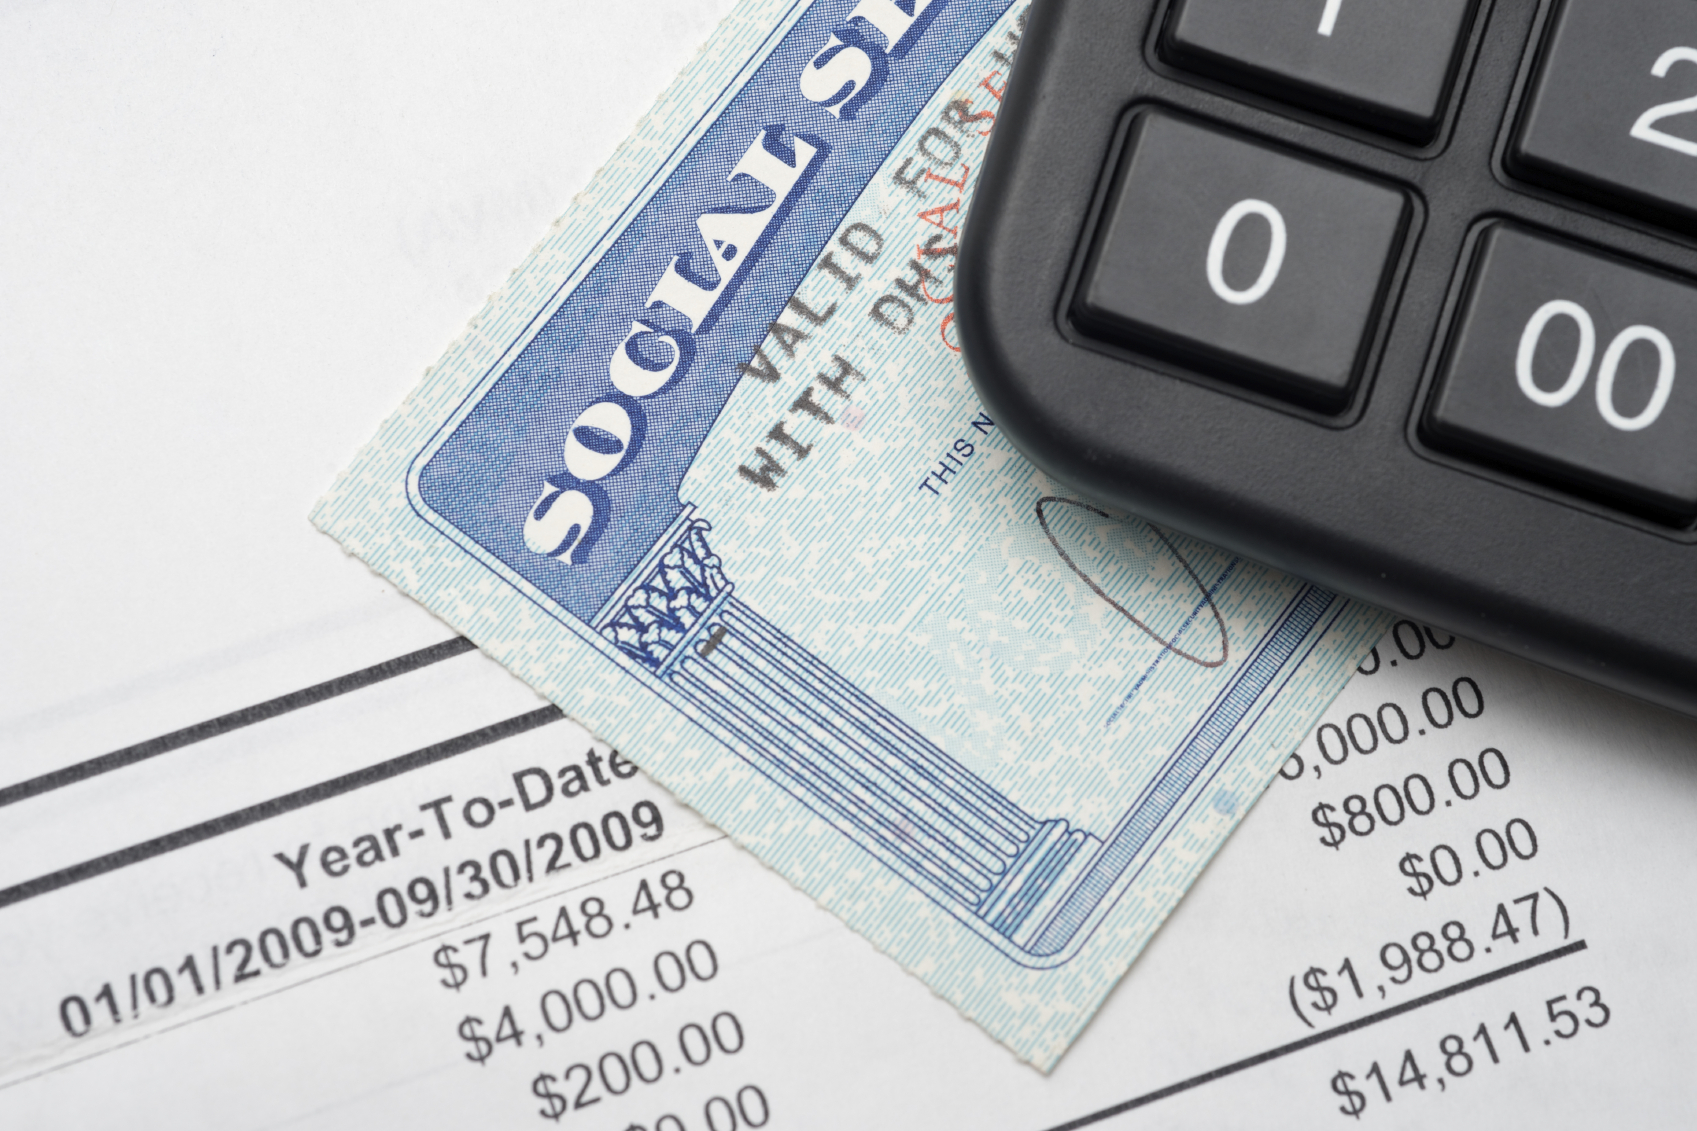 taxation on social security benefits and calculating social security benefits tax